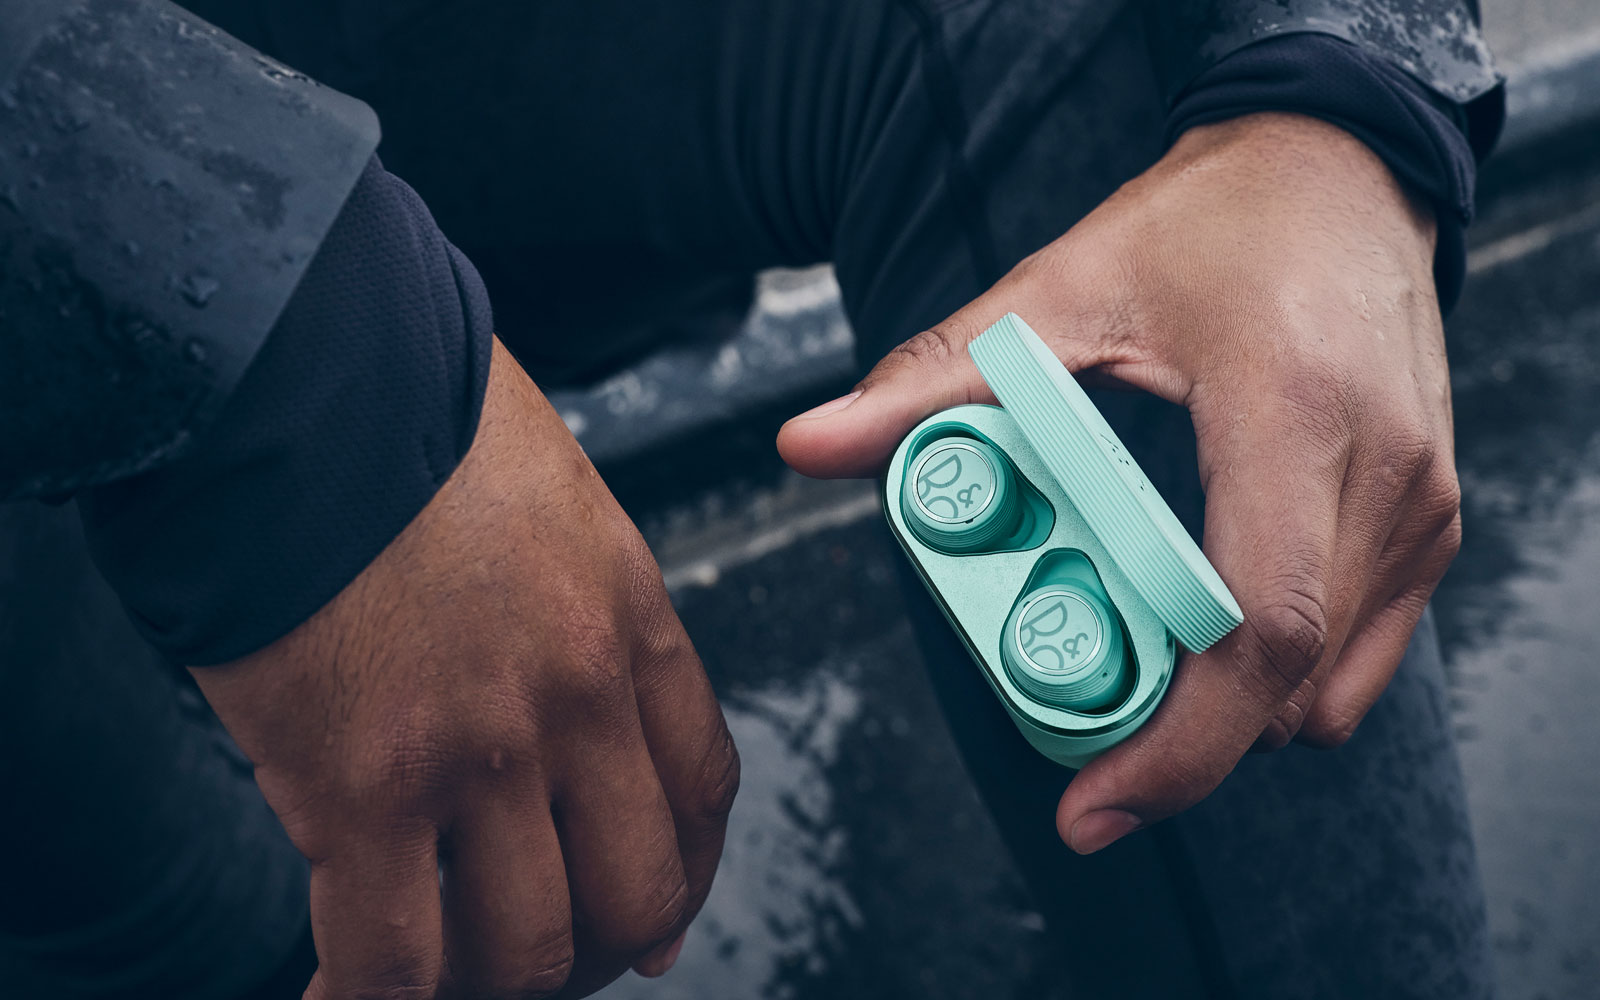 Bang & Olufsen's Beoplay E8 Sport are pricey wireless earbuds for workouts